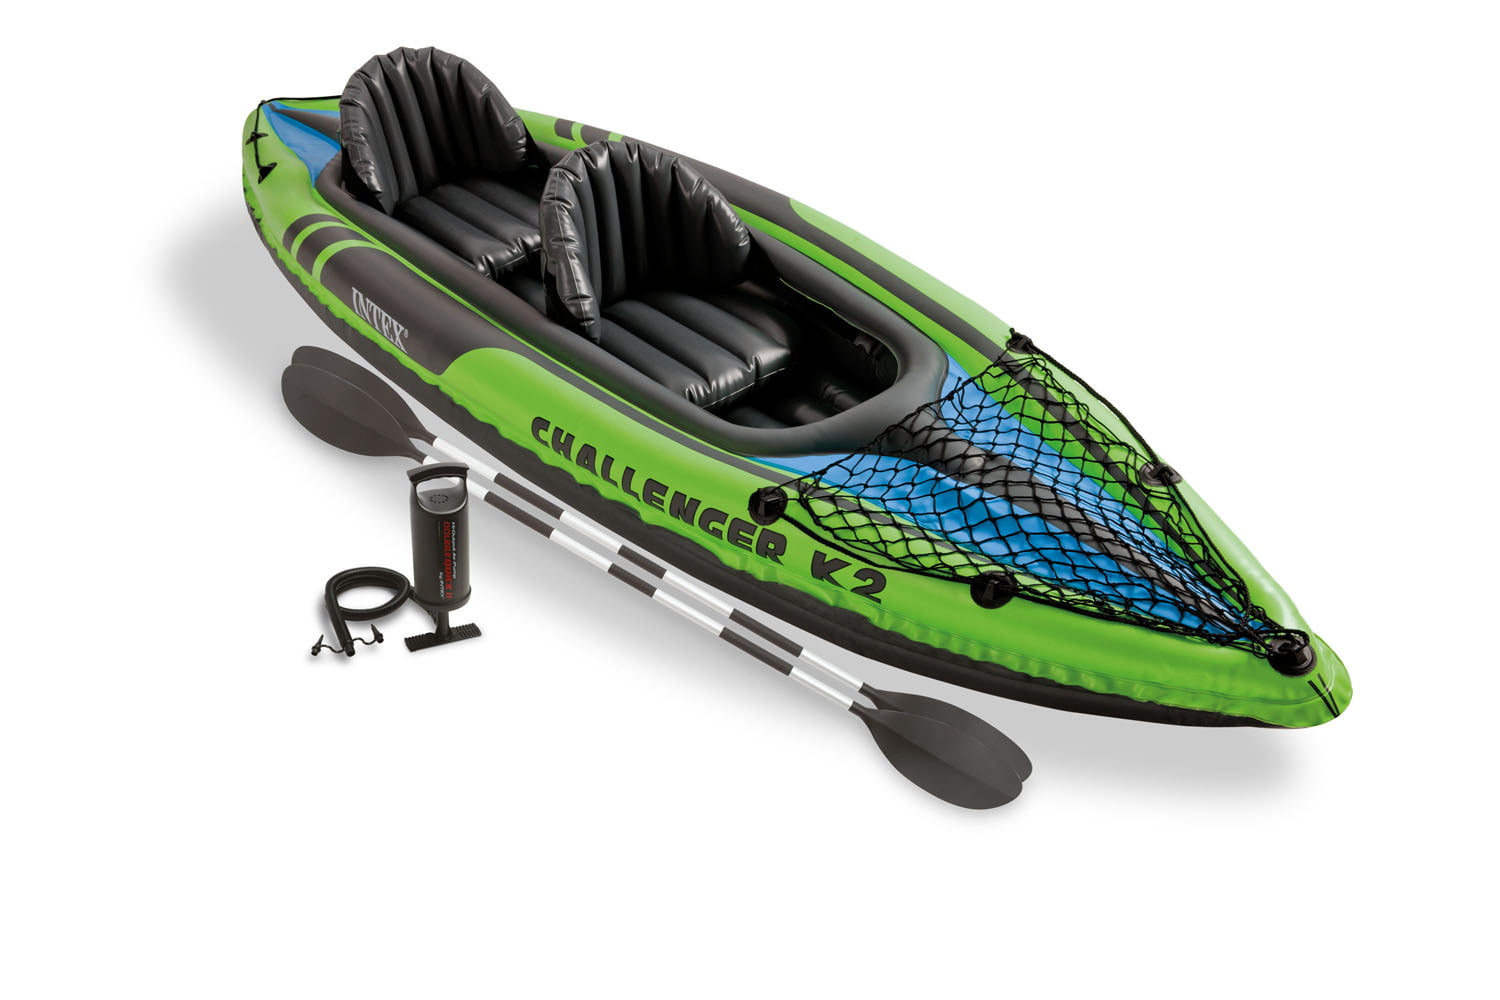 Intex Challenger K2 2-Person Kayak